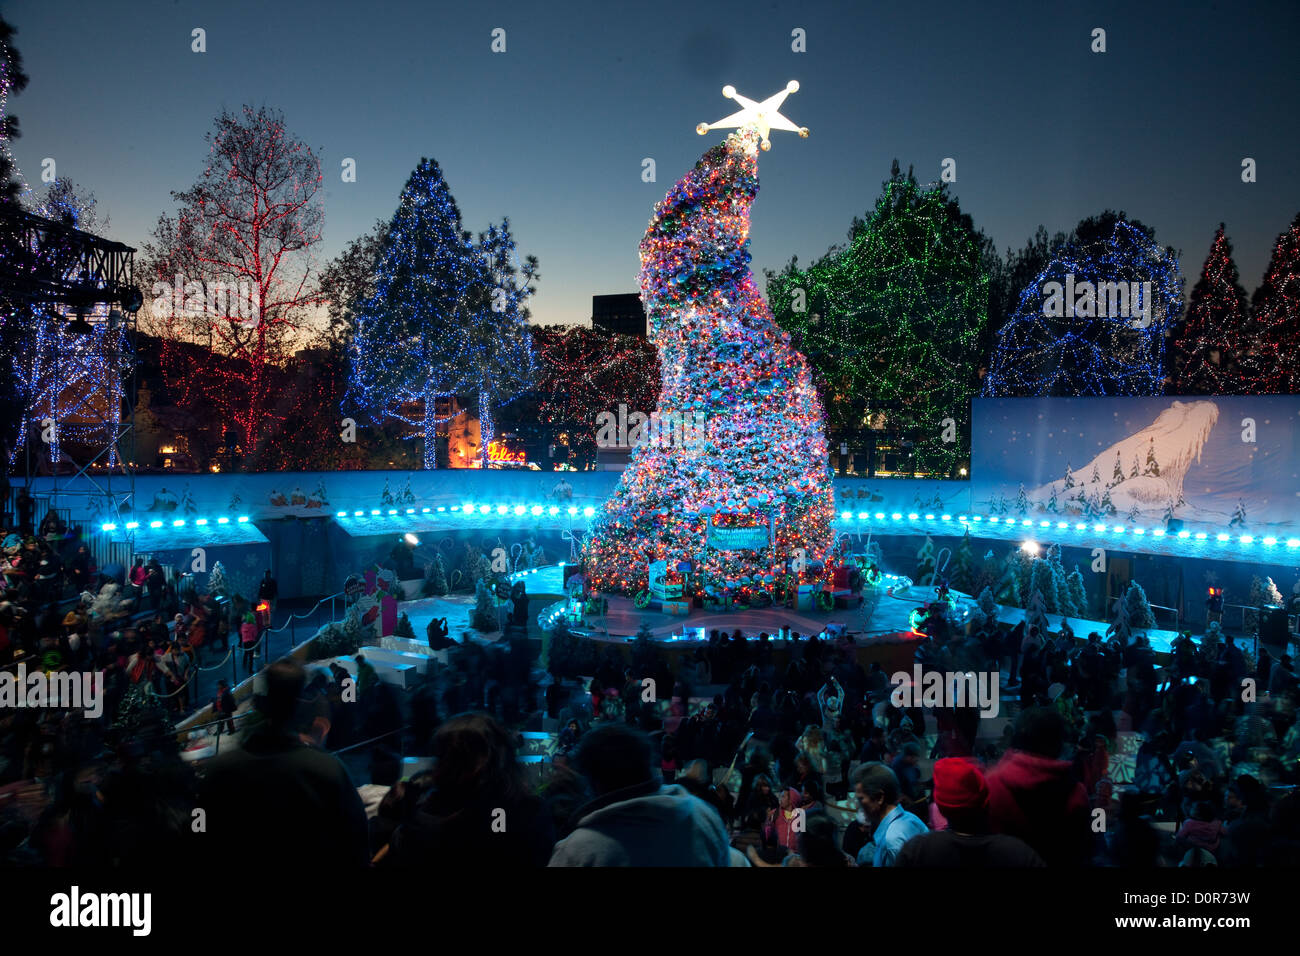 The crooked Christmas tree at Grinchmas at Universal Studios Stock ...